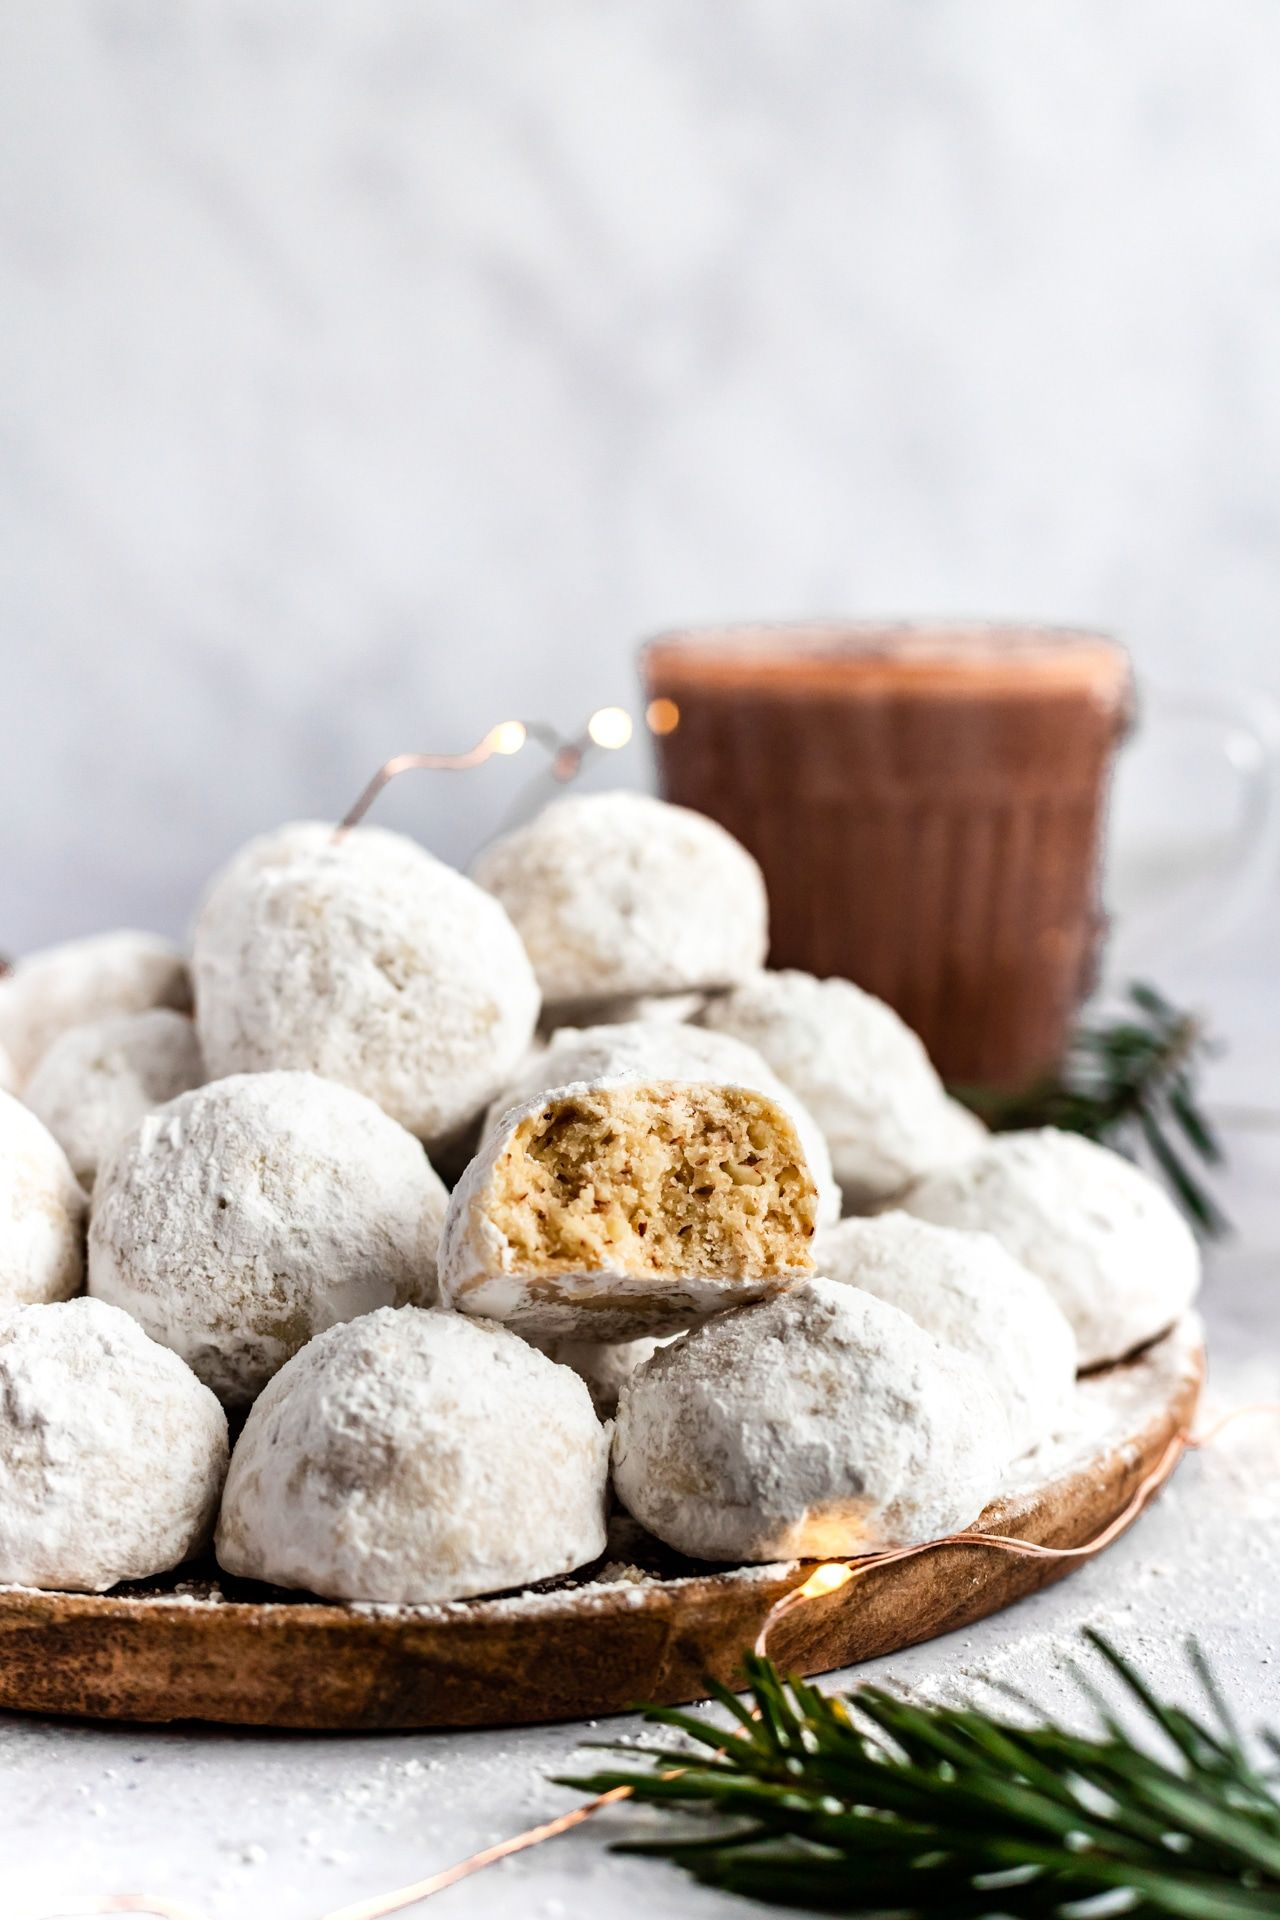 Mexican Wedding Cookies are absolutely irresistible and a